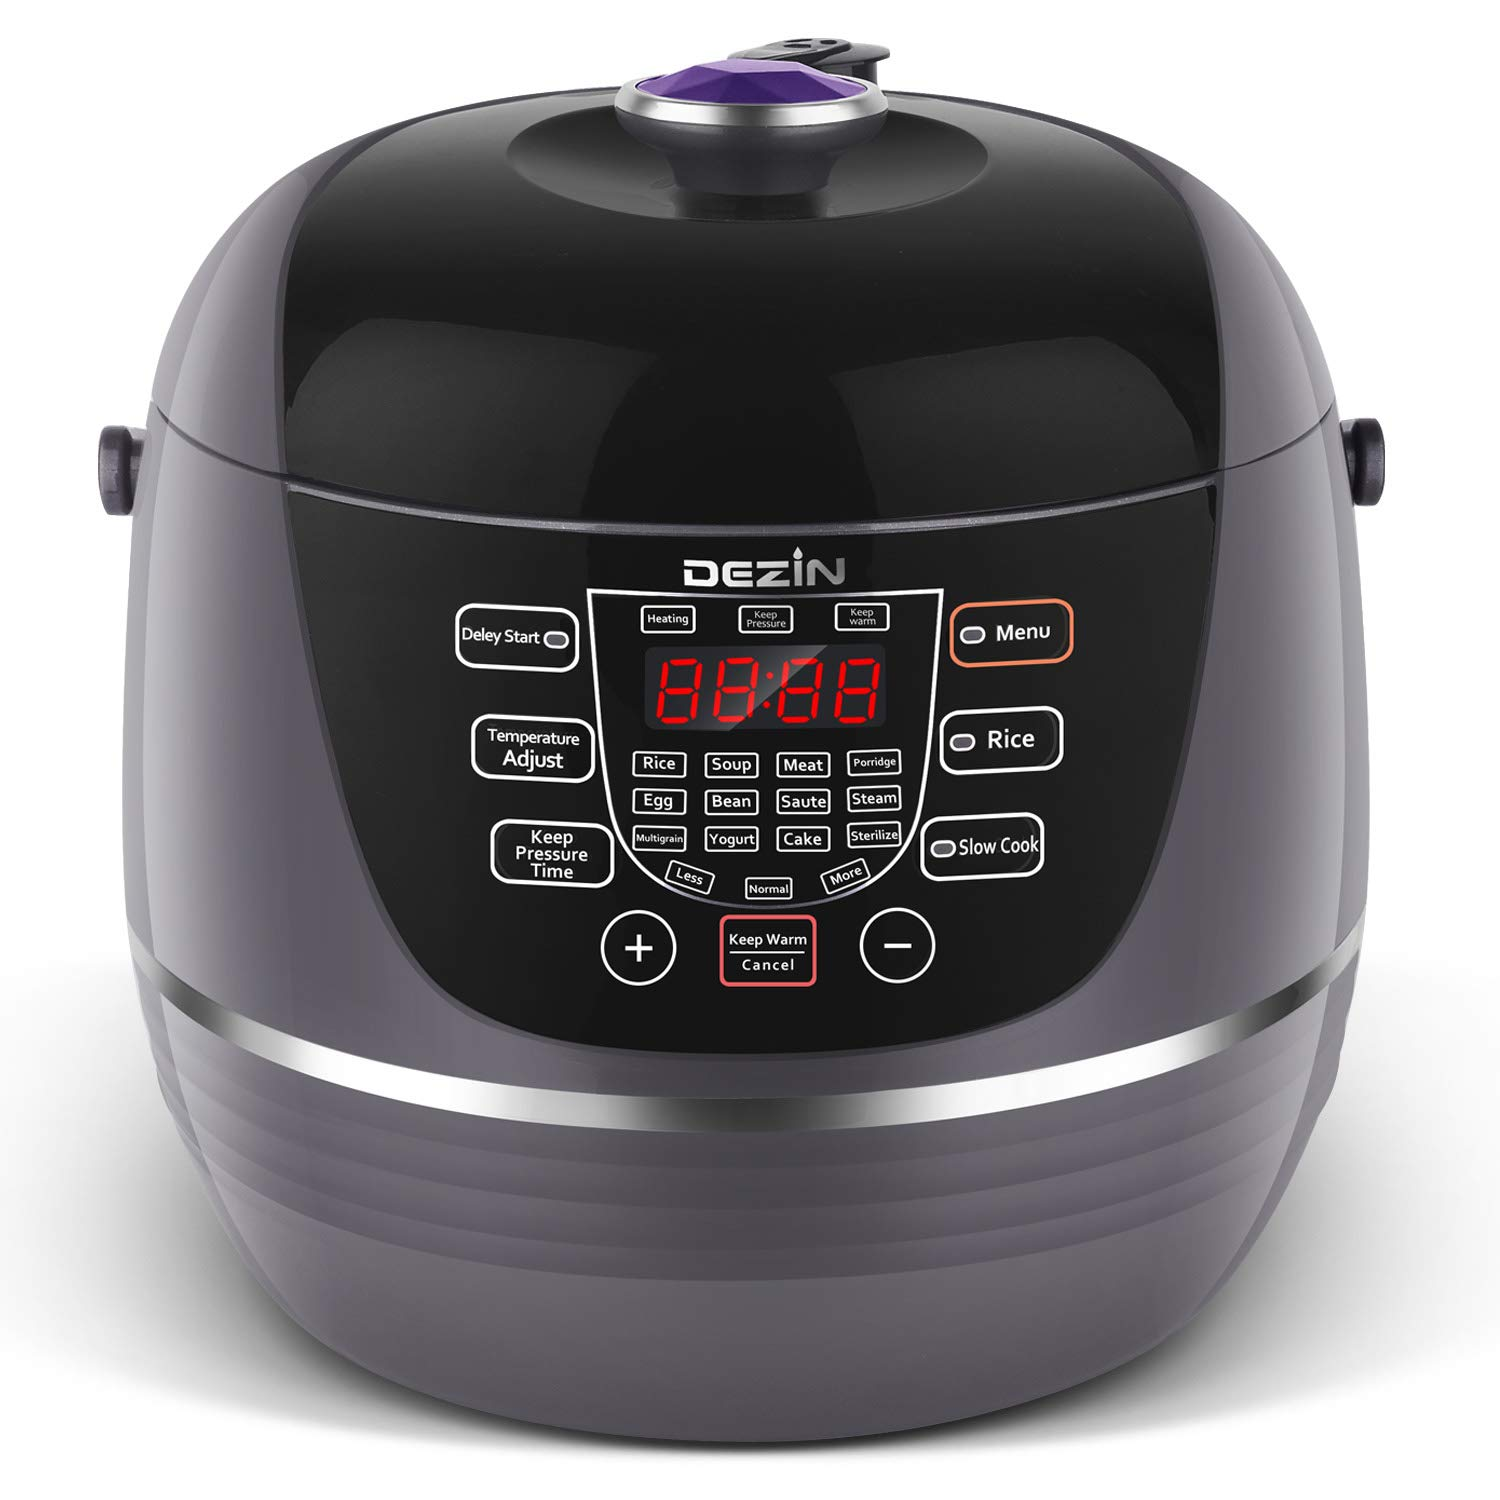 Dezin Electric Pressure Cooker 6 Qt 10-in-1 Programmable Pressure Cooker, Slow Cooker, Rice Cooker, Sauté, Yogurt, Cakes, Hot Pot, Steamer, Warmer, and Sterilizer with Stainless Steel Pot, Steam Rack